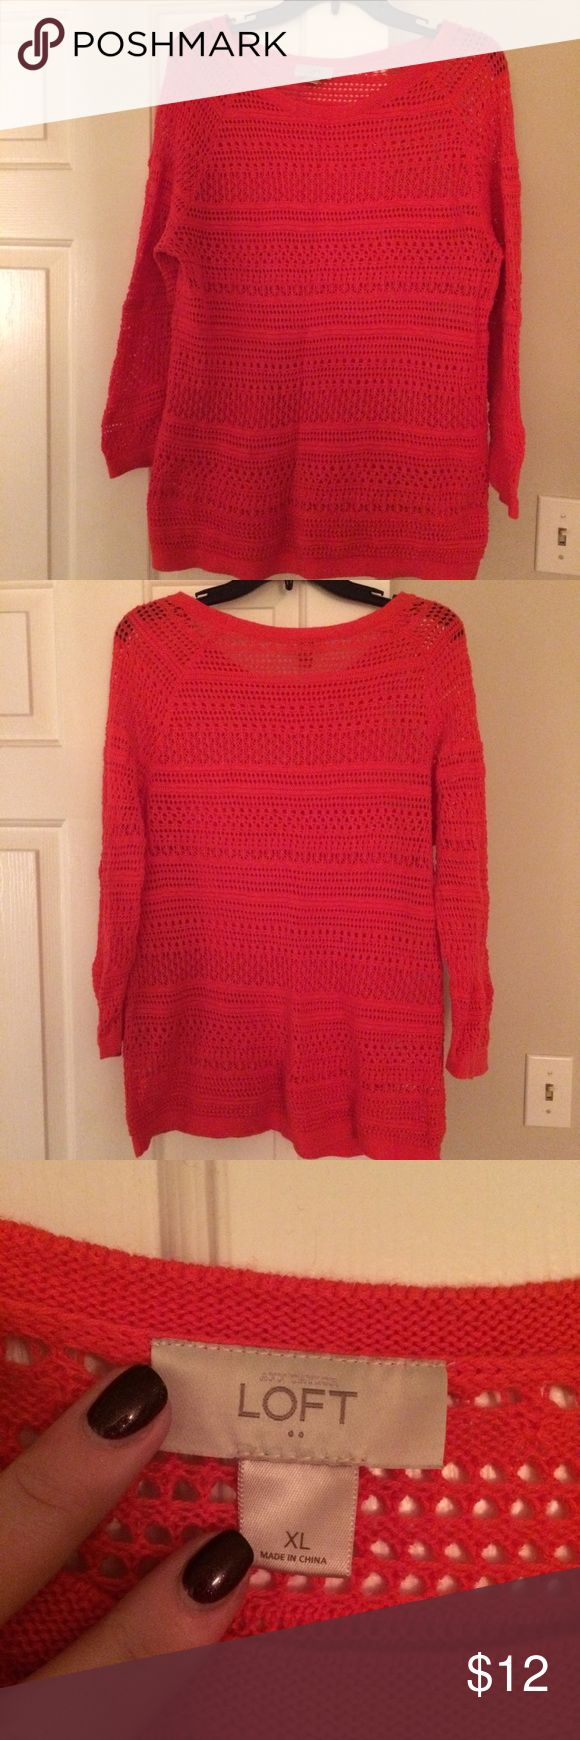 Watermelon open-stitch sweater Worn once, this vibrant watermelon-colored open-stitch sweater is from an Ann Taylor Loft Factory store. There are no pulls on the sweater. This comes from a smoke-free home. Please ask any questions! LOFT Sweaters Crew & Scoop Necks